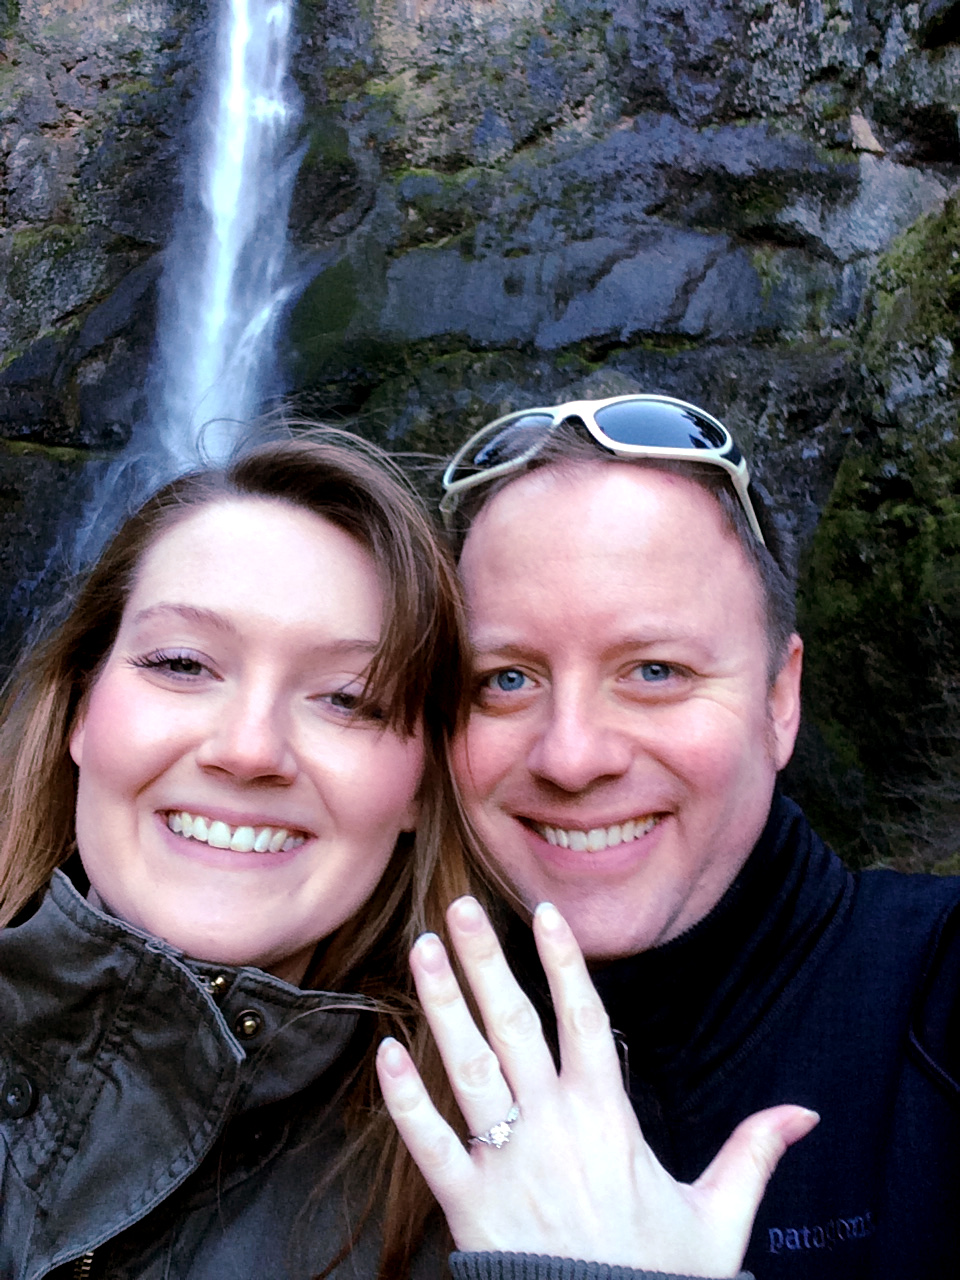 That's Aeriel and me and we're officially engaged!! March 1st, 2015